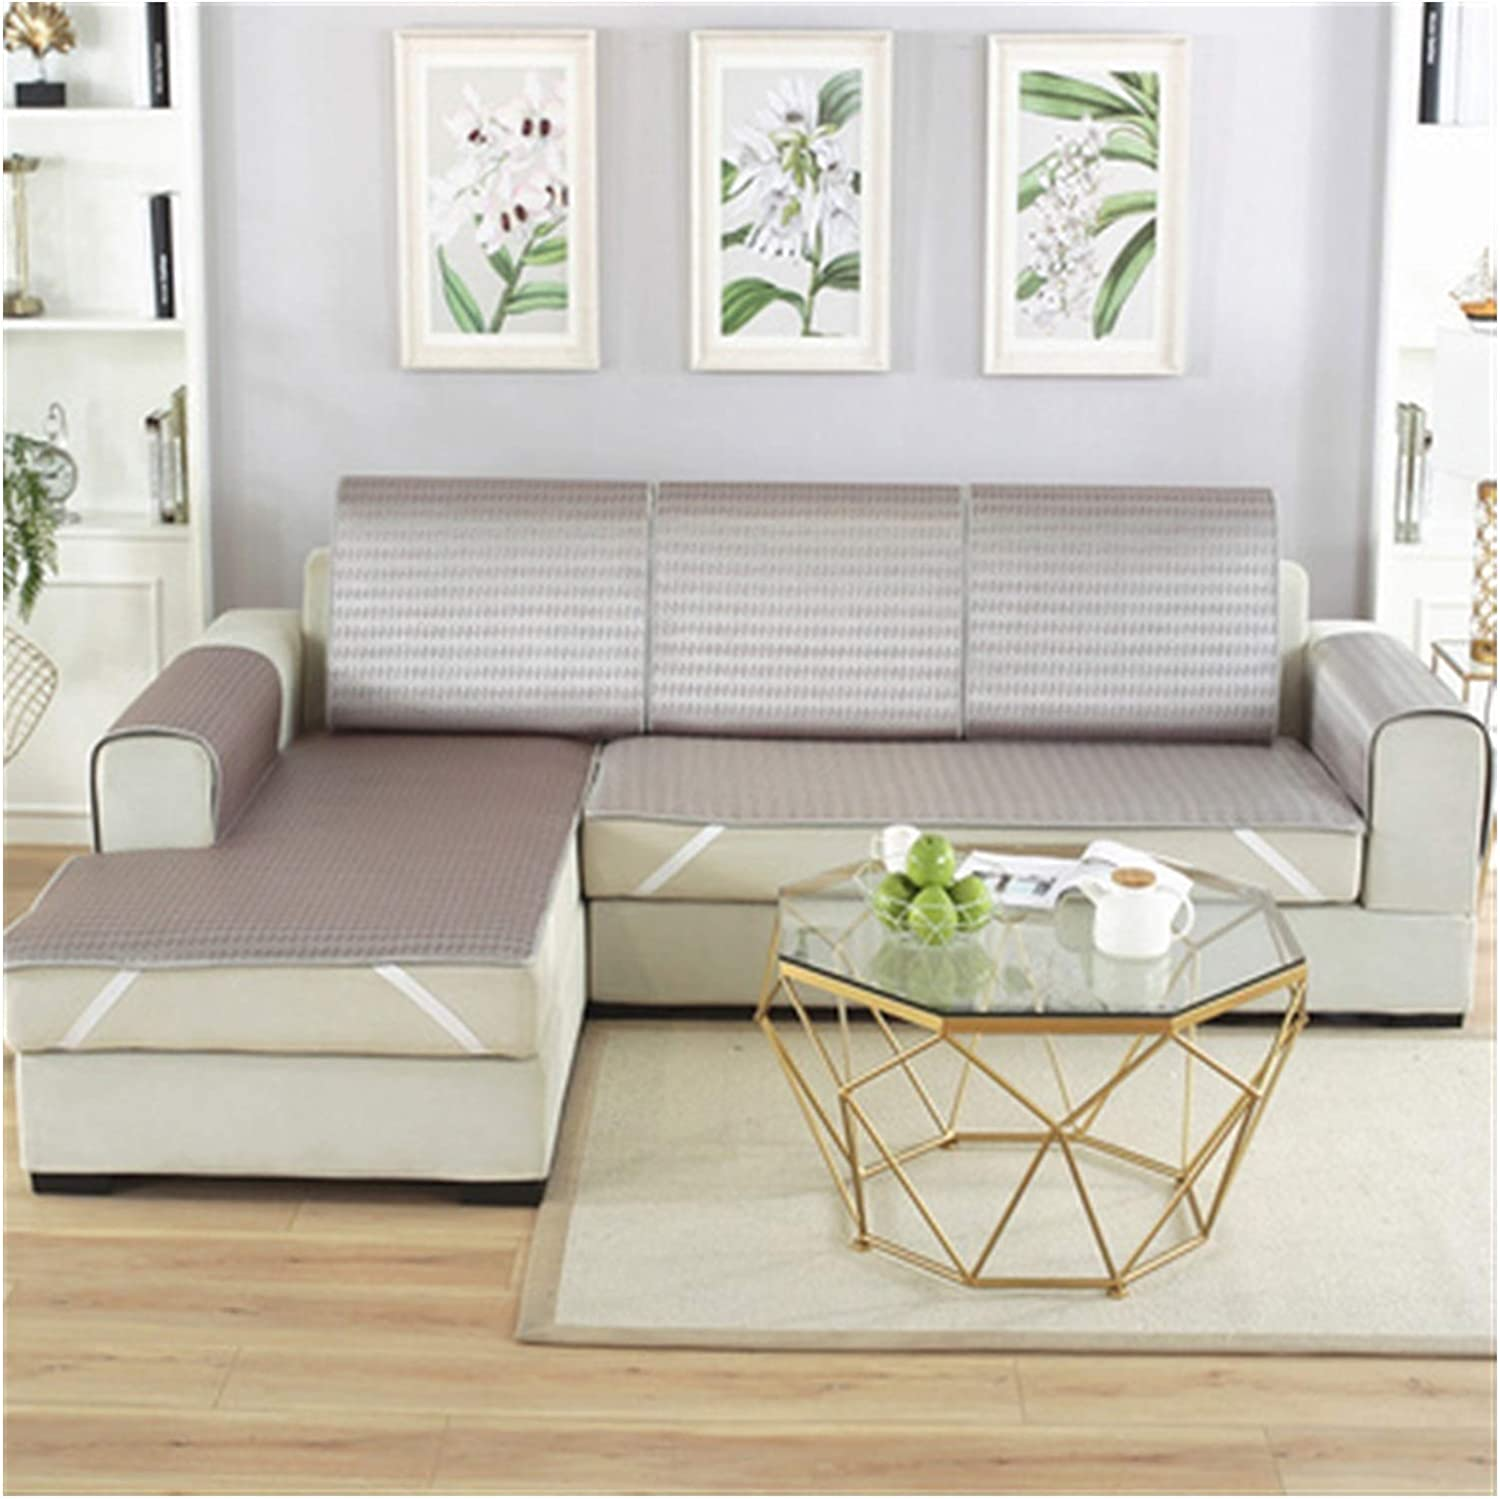 Summer Sofa Manufacturer direct delivery Slipcover Smooth Durable Easy to Mat Us Popular products Rattan Store